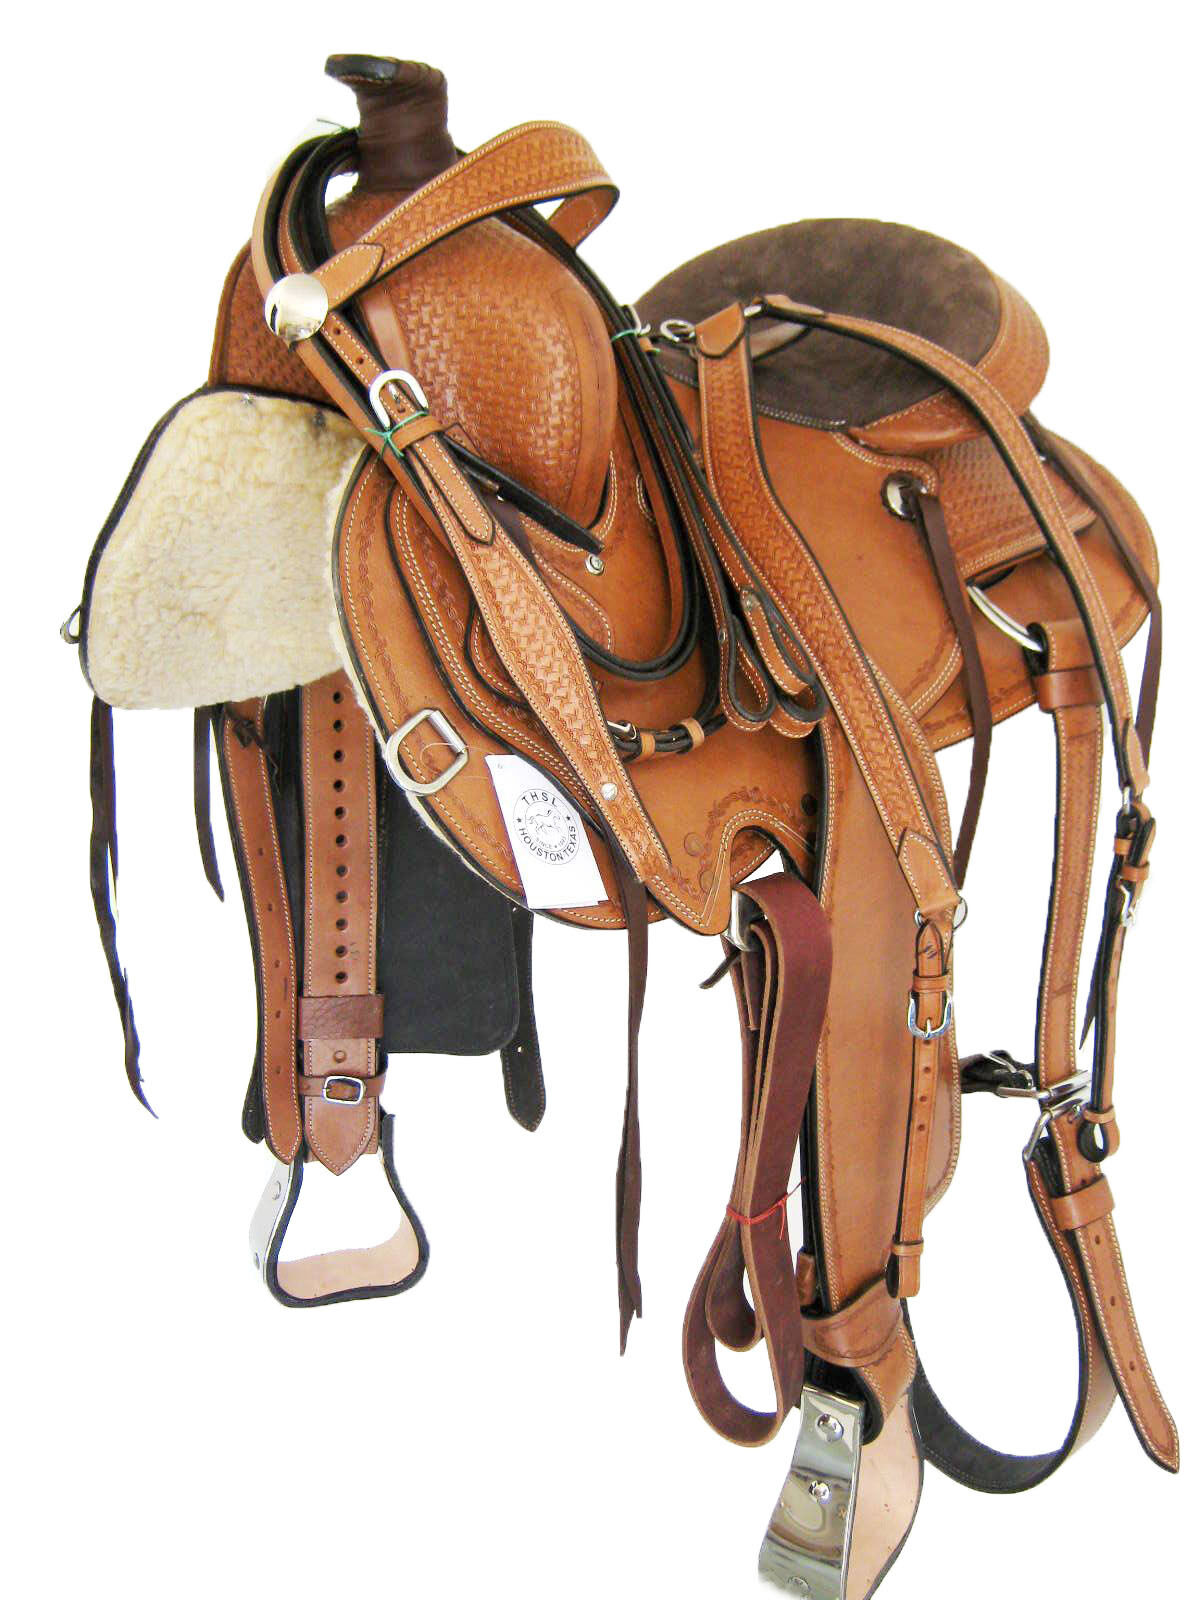 WESTERN ROPER SADDLE SET 'THSL'  LIGHT OIL METAL COVERED STIRRUPS 15   (1074)